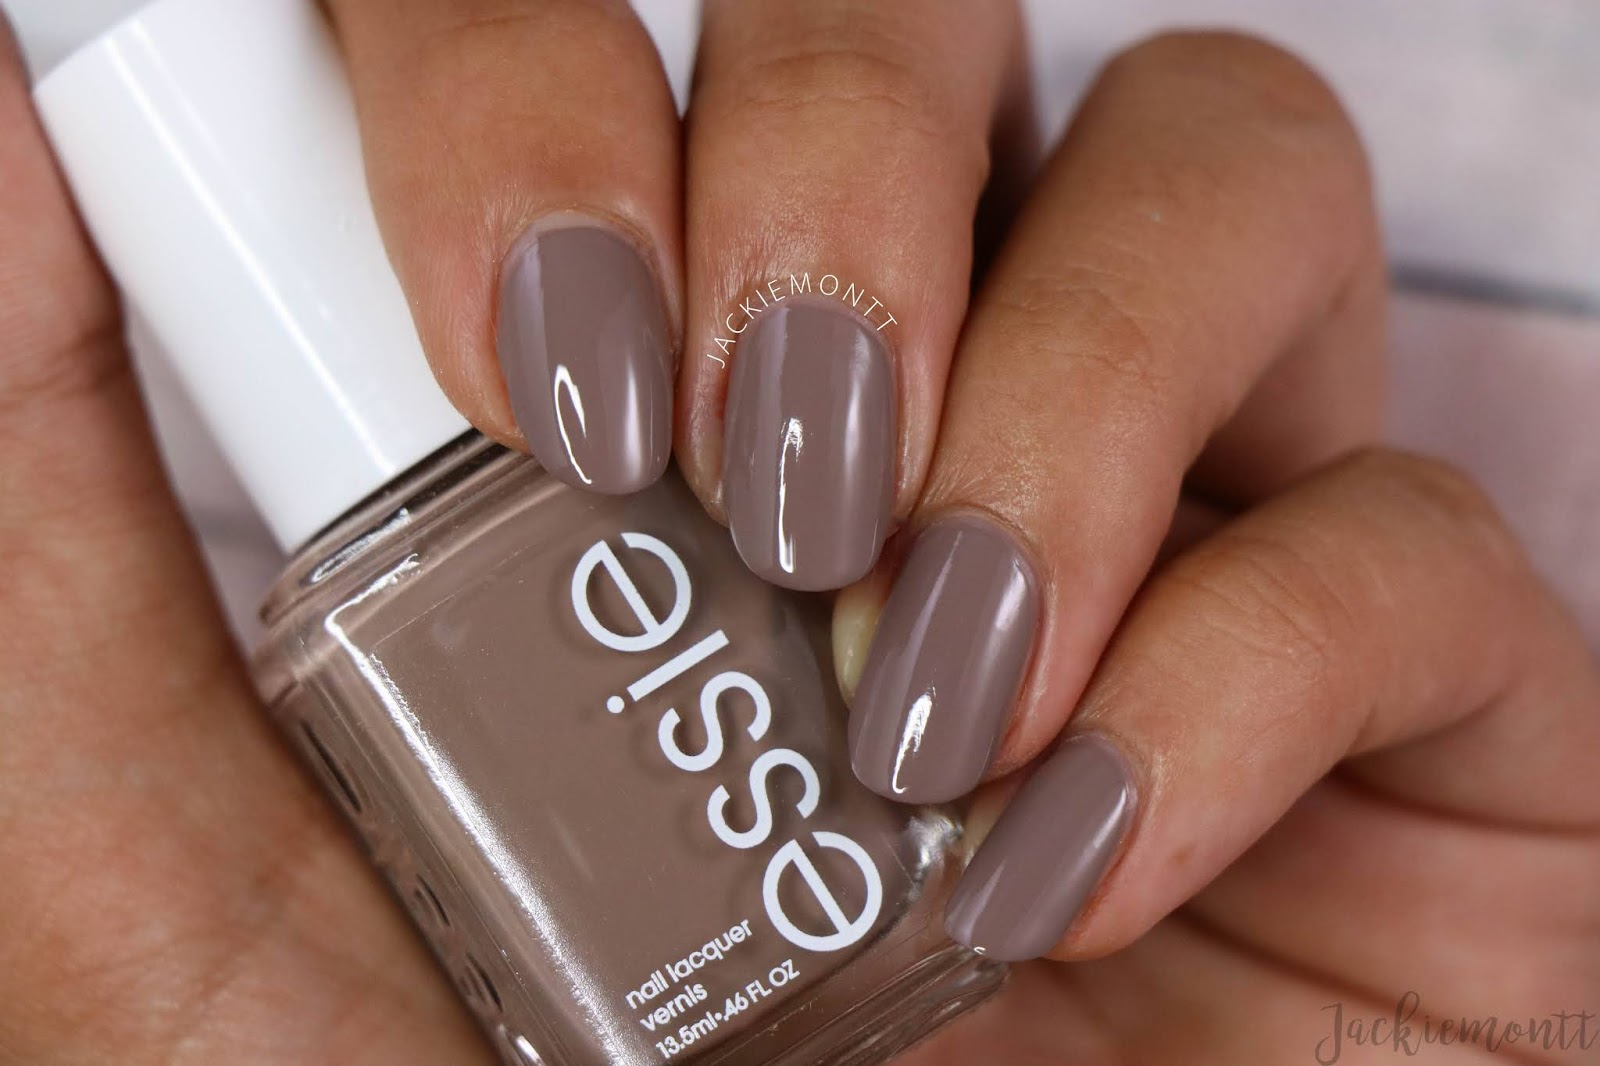 Essie Fall 2019 Collection Swatches and Review , JACKIEMONTT